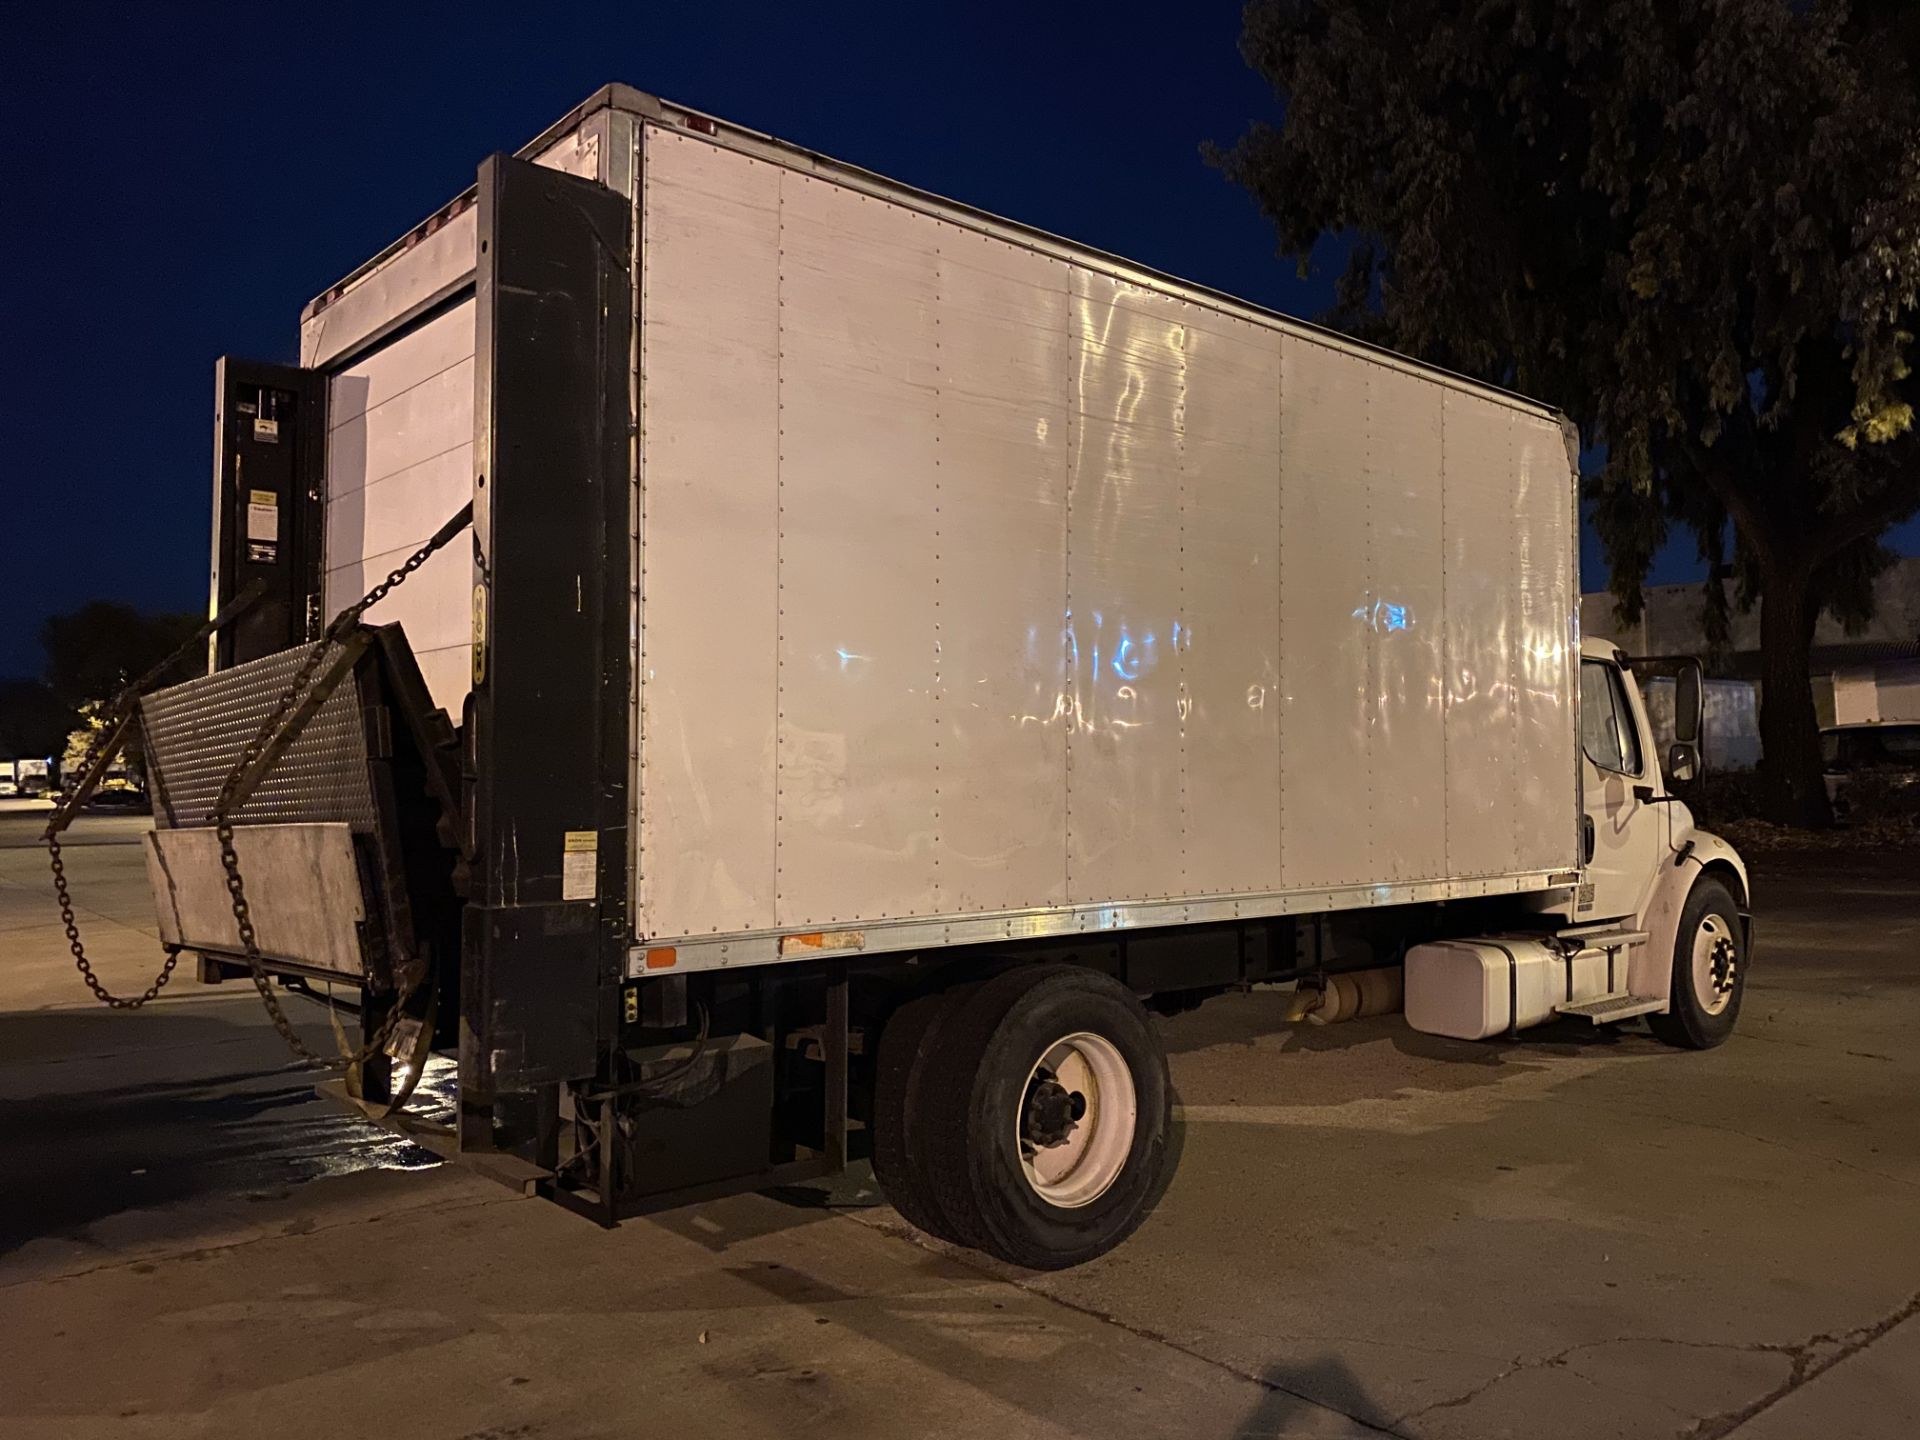 2005 Freightliner refrigerated truck - Image 3 of 5